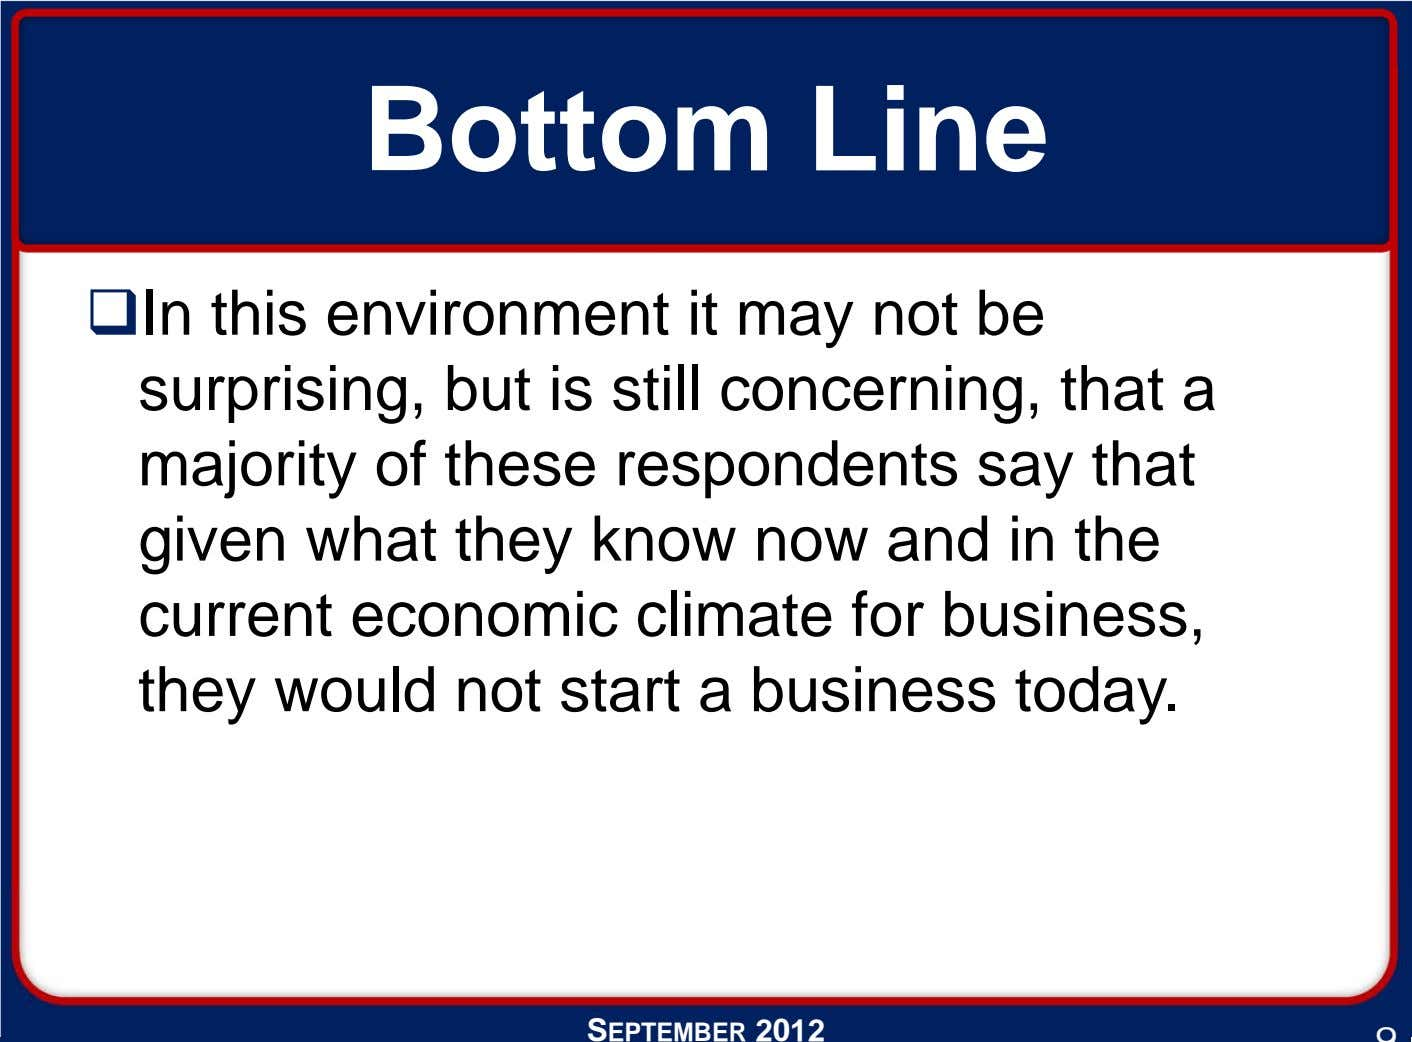 Bottom Line In this environment it may not be surprising, but is still concerning, that